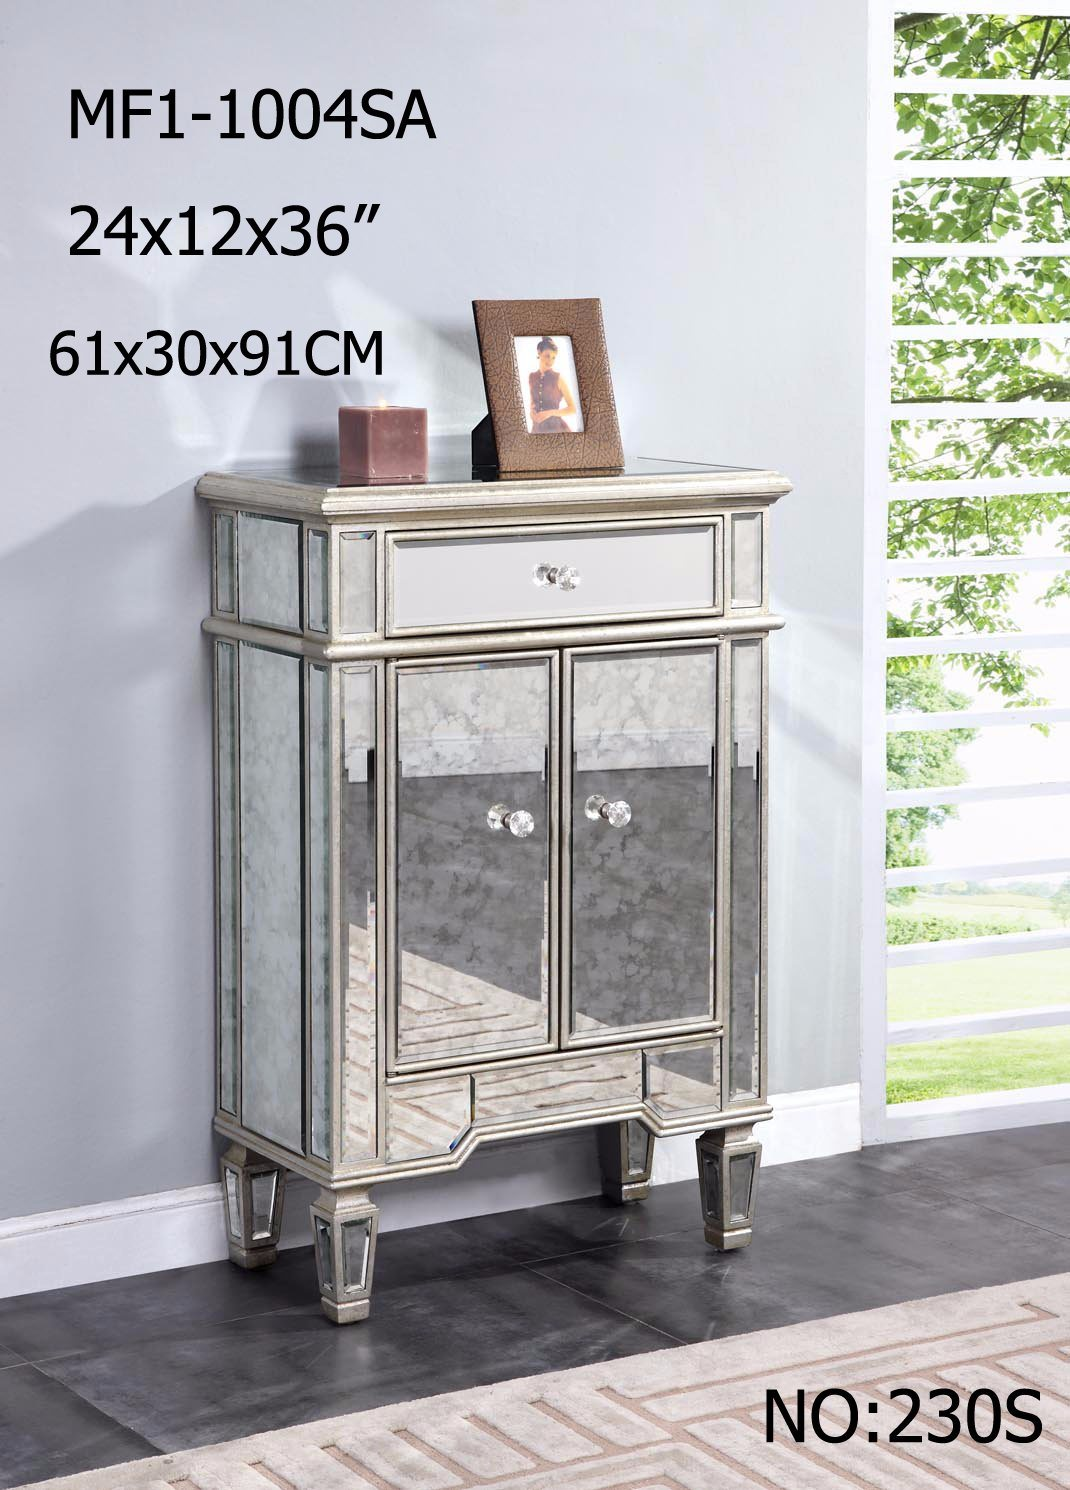 Living Room Mirrored Furniture with Drawer Cabinet